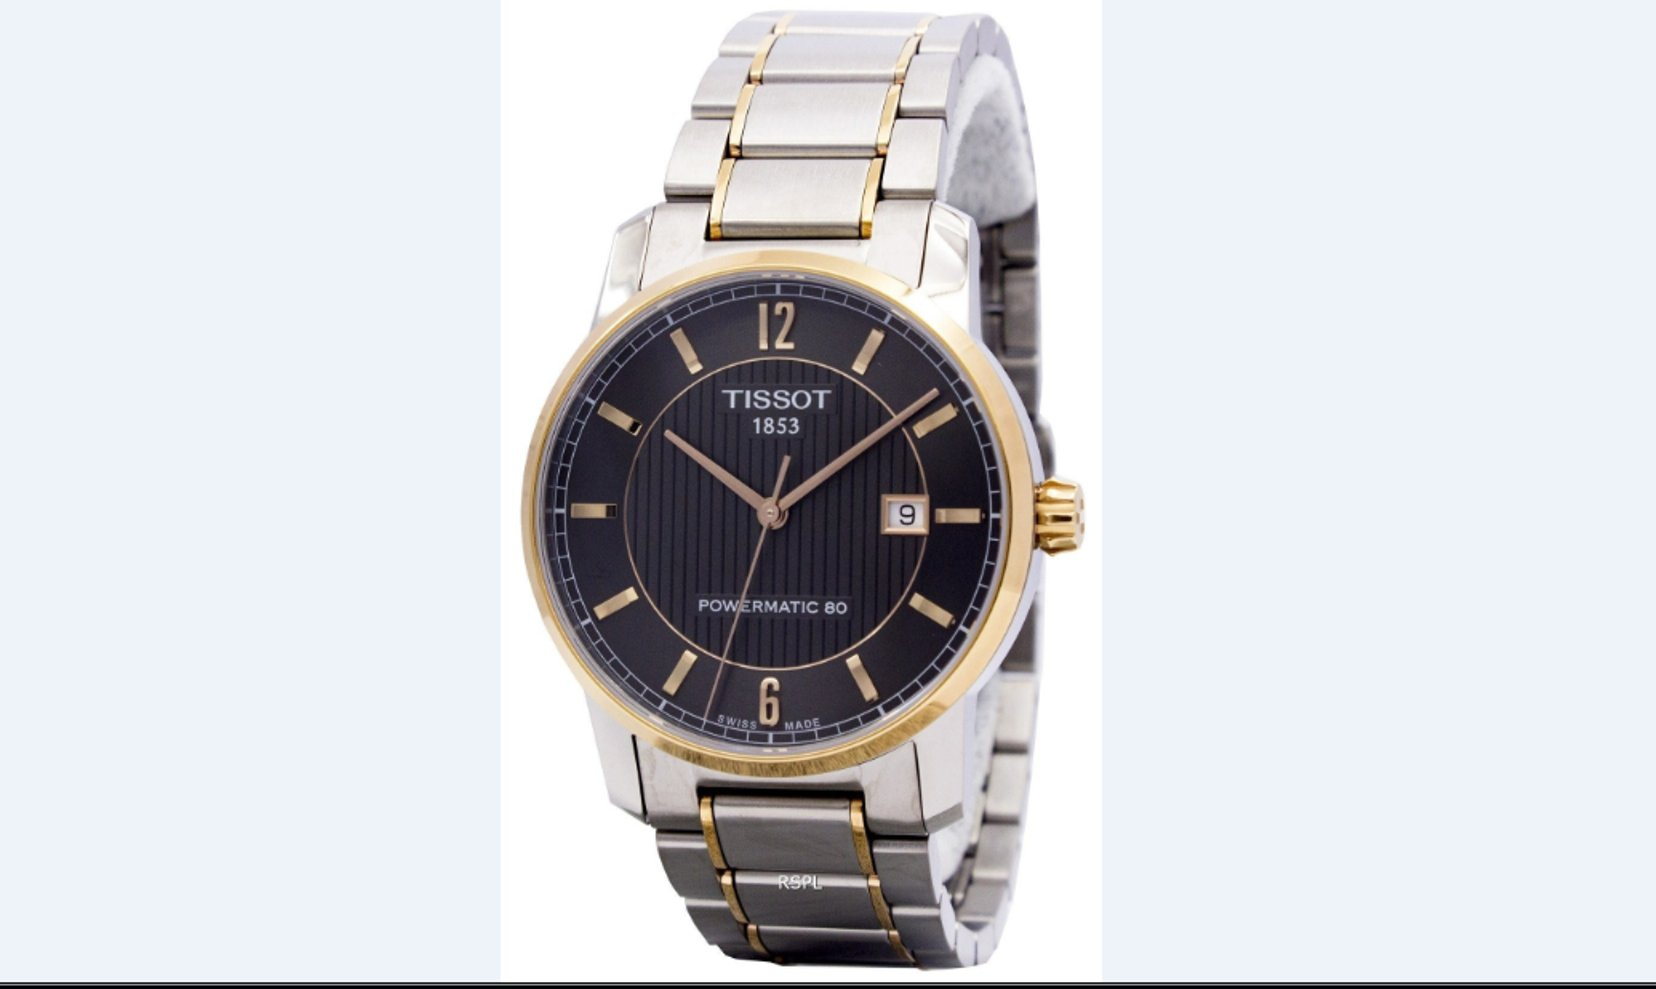 Tissot T-Classic Titanium Automatic T087.407.55.067.00 Mens Watch: An Extremely Straightforward Piece